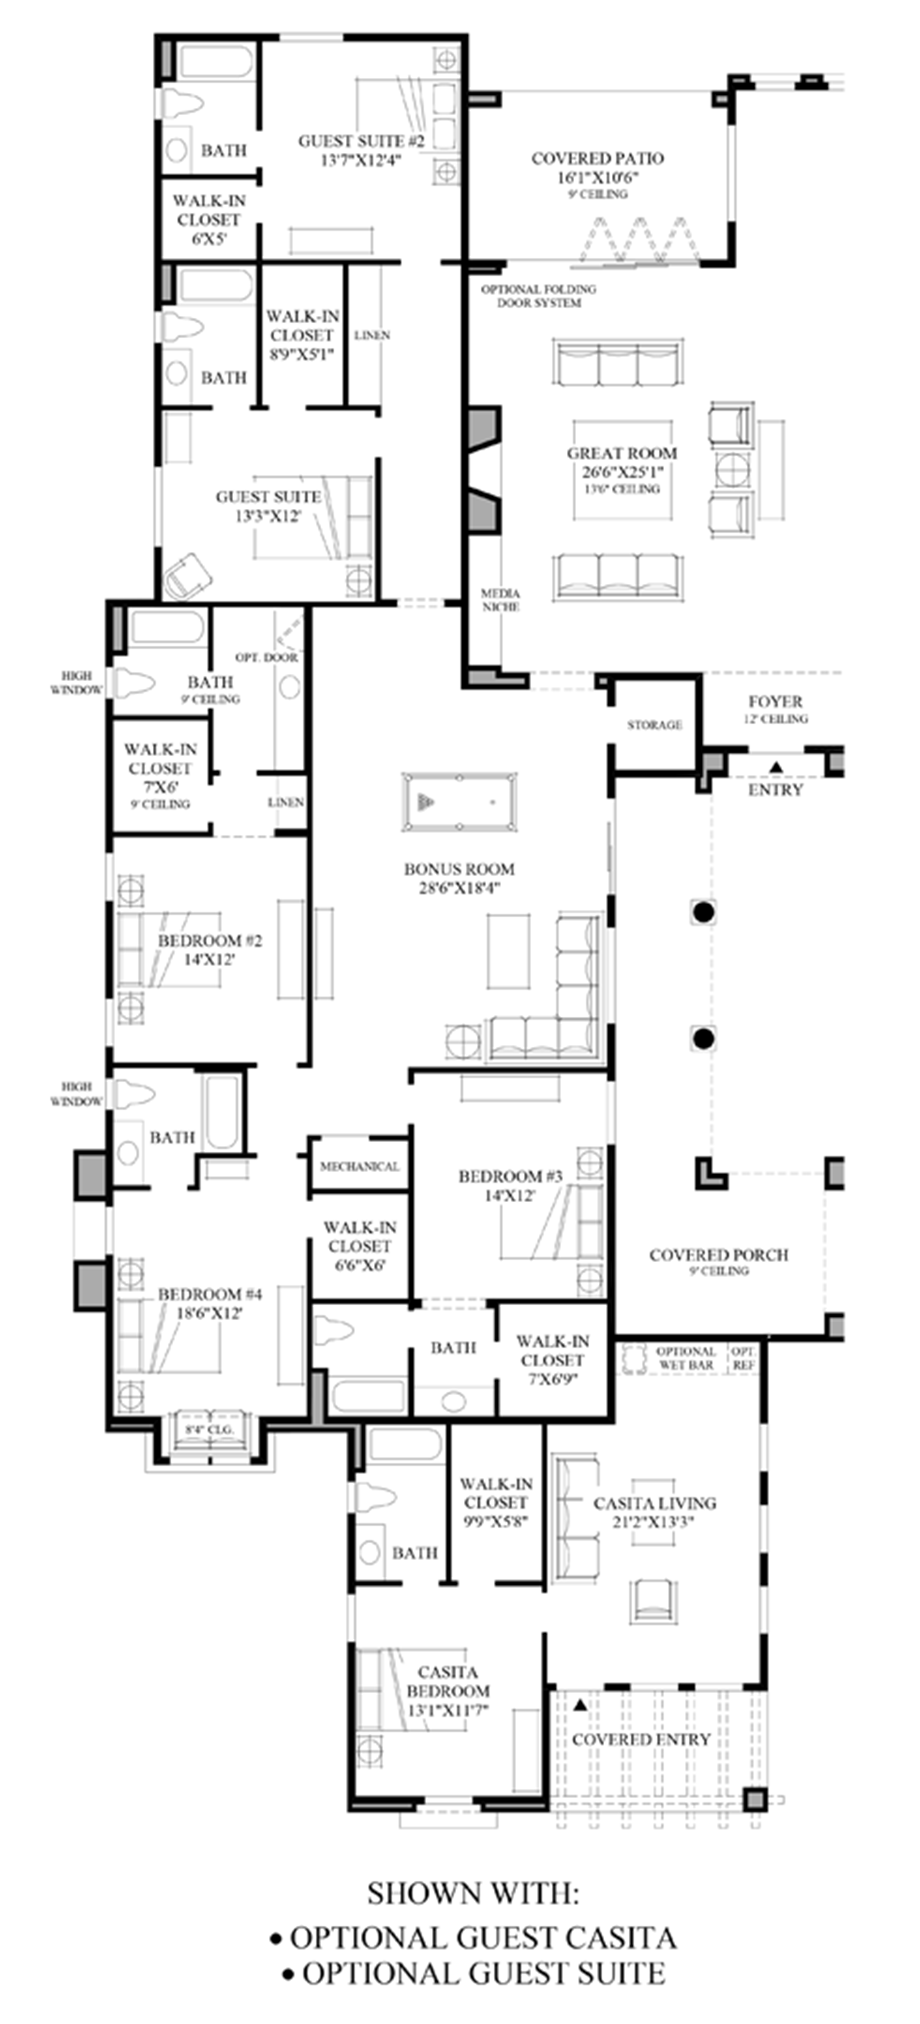 Optional Guest Casita & Guest Suite Floor Plan